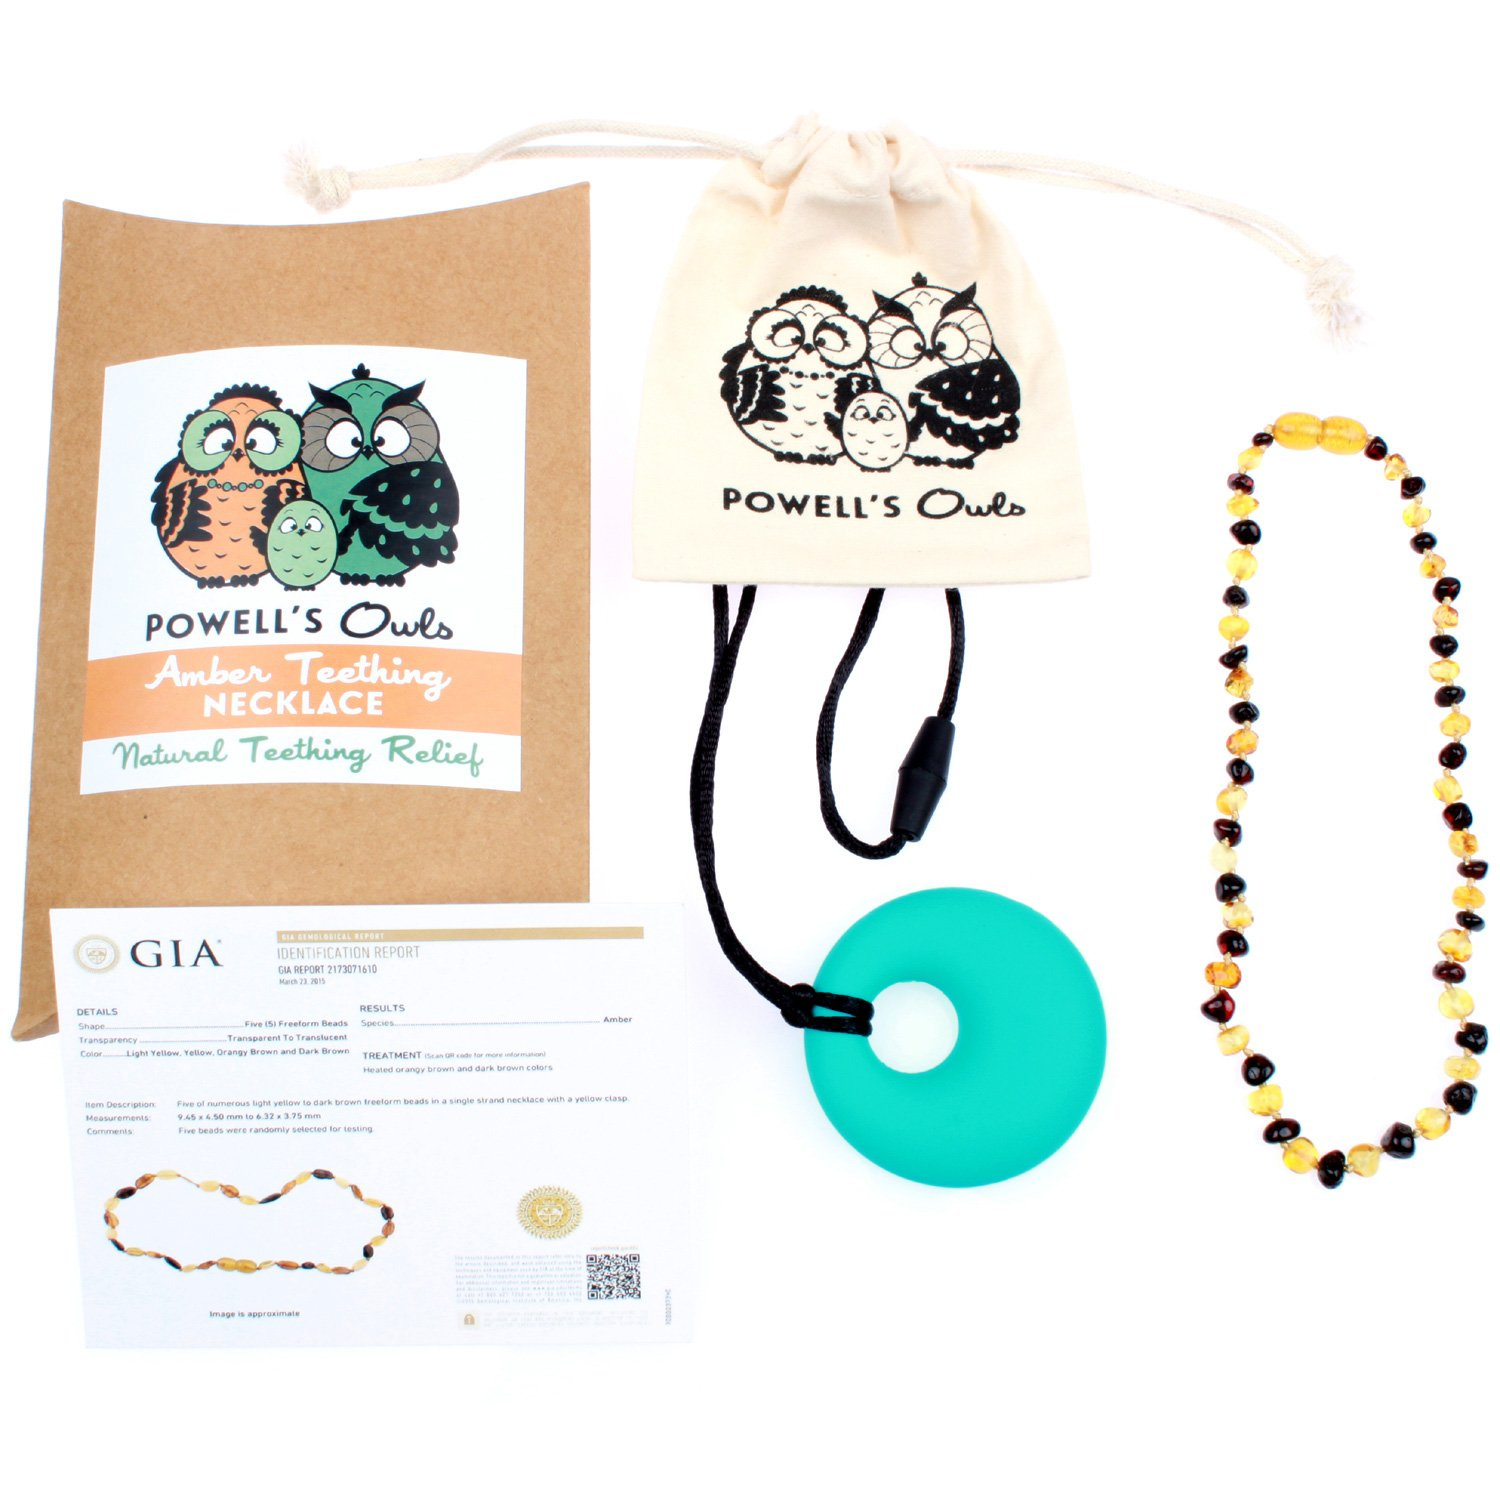 Baltic Amber Teething Necklace Gift Set + FREE Silicone Teething Pendant ($15 Value) Handcrafted, 100% USA Lab-Tested Authentic Amber - Teething Pain Relief (Unisex - Honey/Cherry Mix - 12.5 Inches)